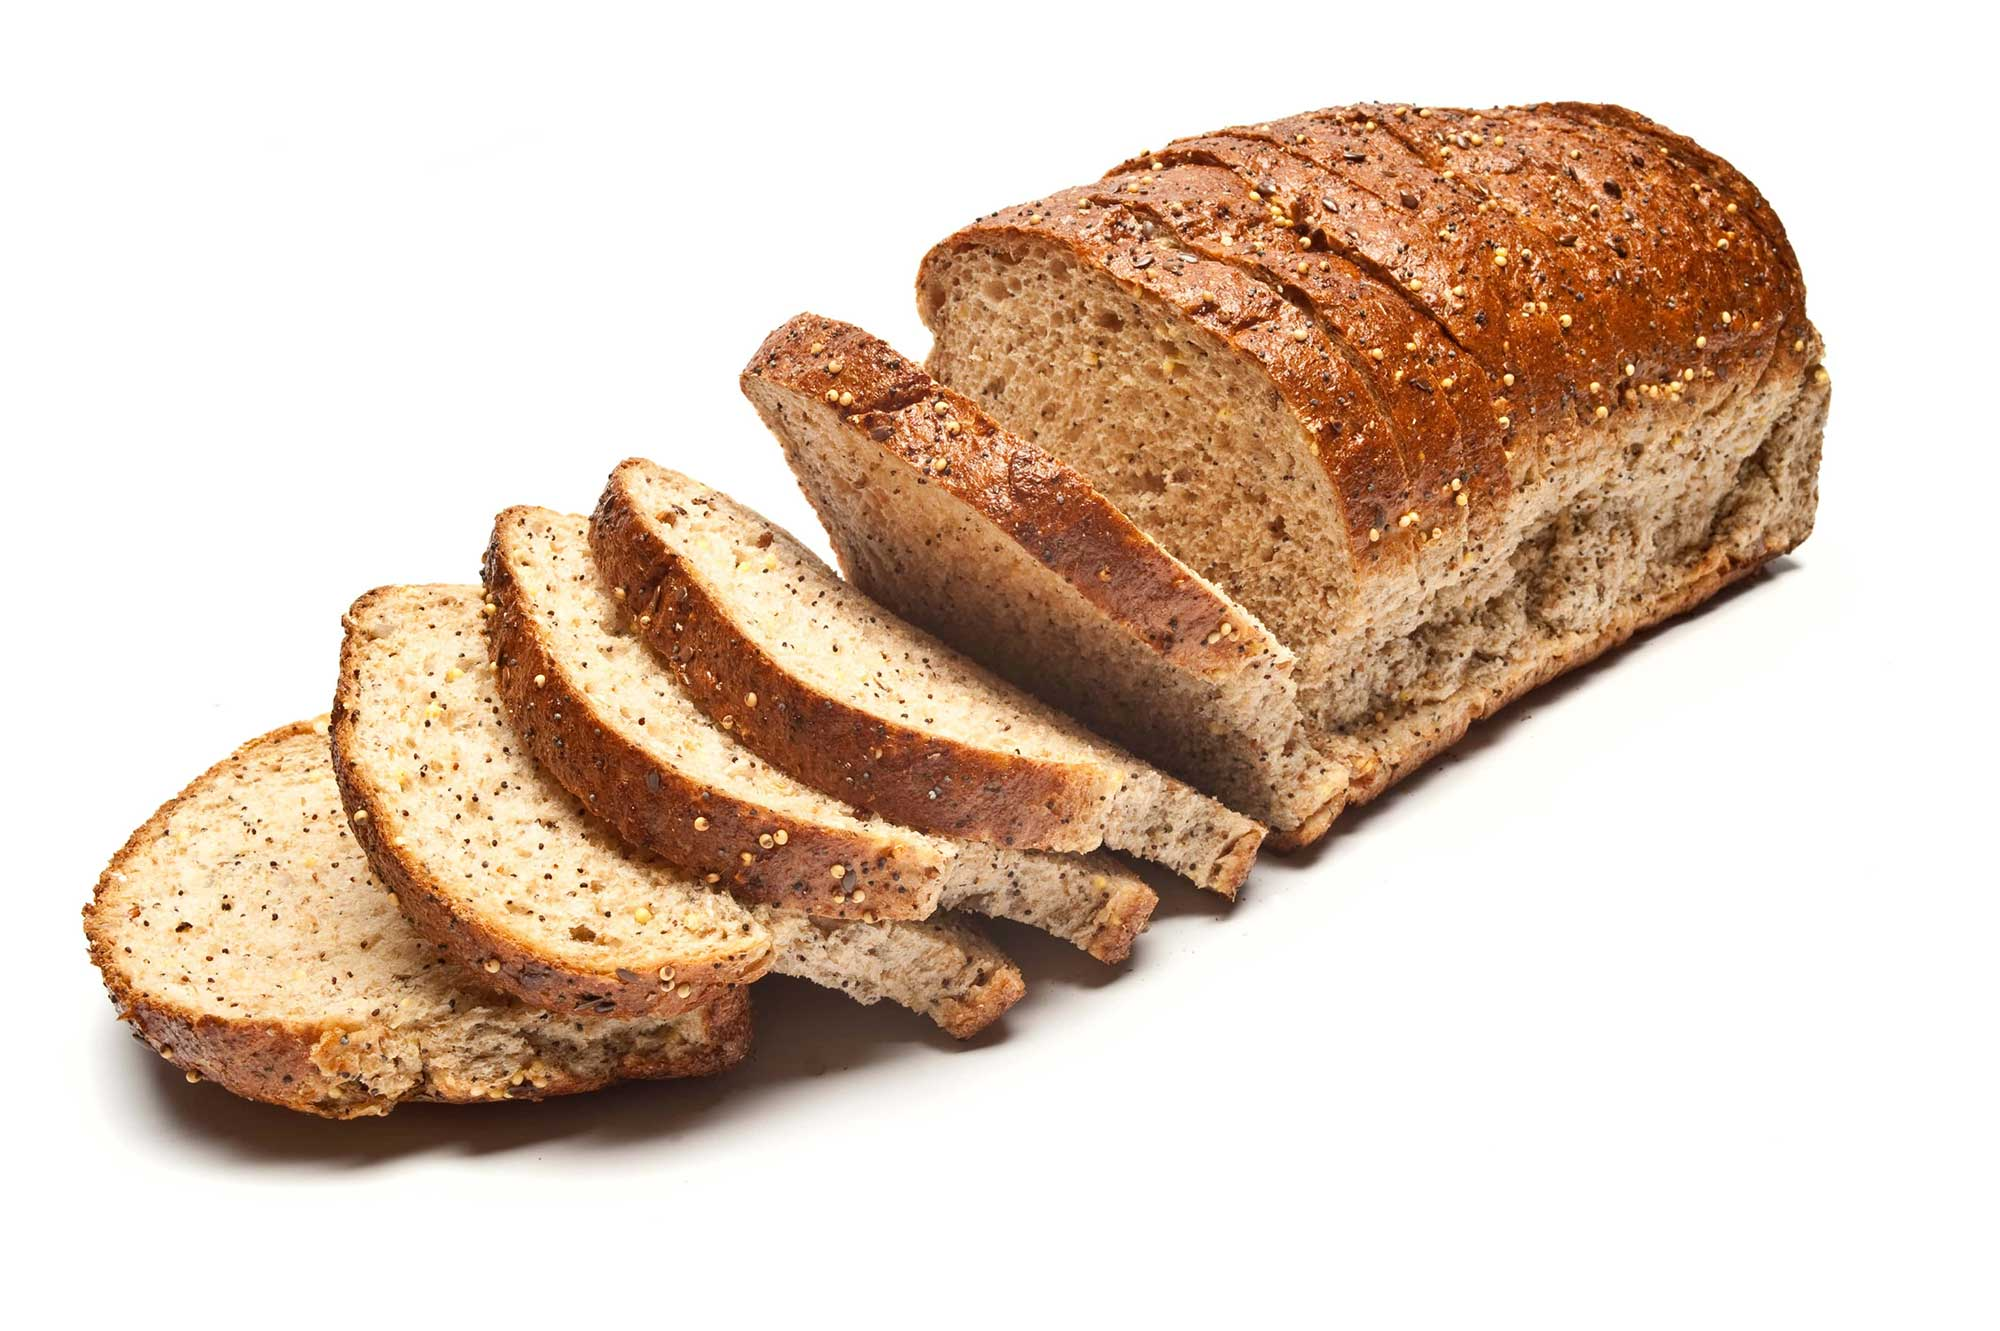 Sliced Loaf of Seeded Brown Bread